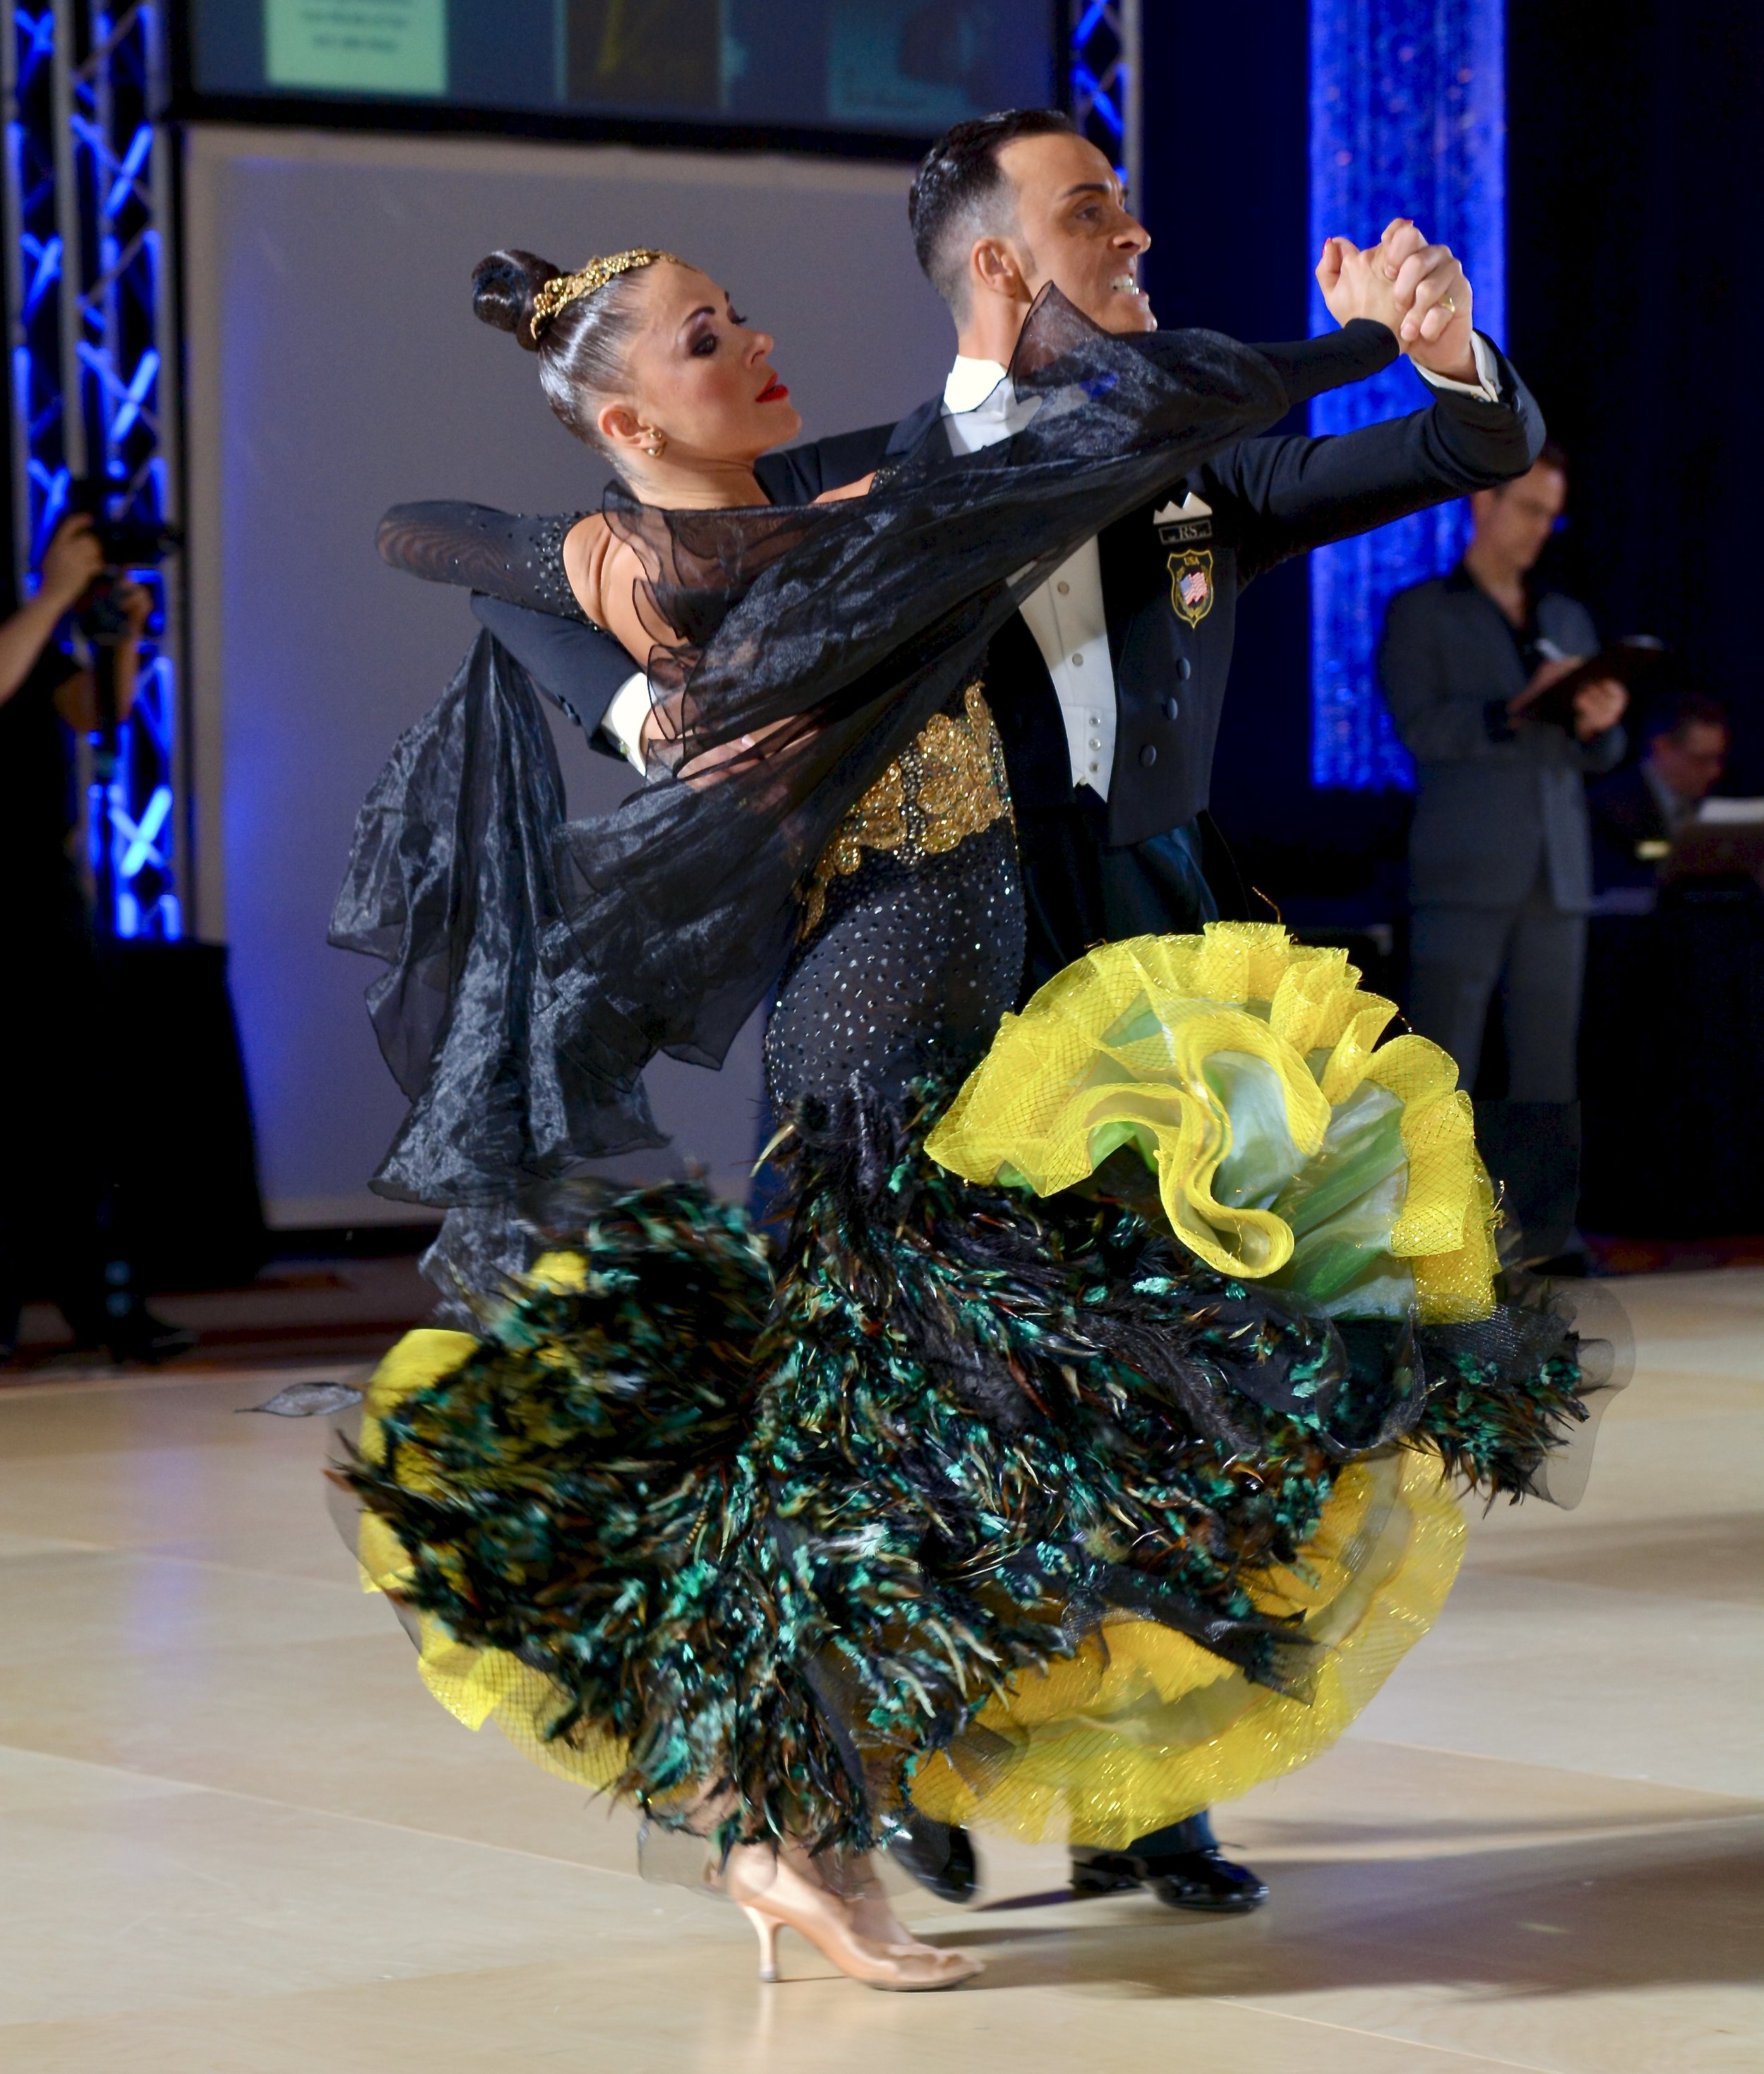 Professional Dancers Manuel Trillo and Anna Belyavtseva